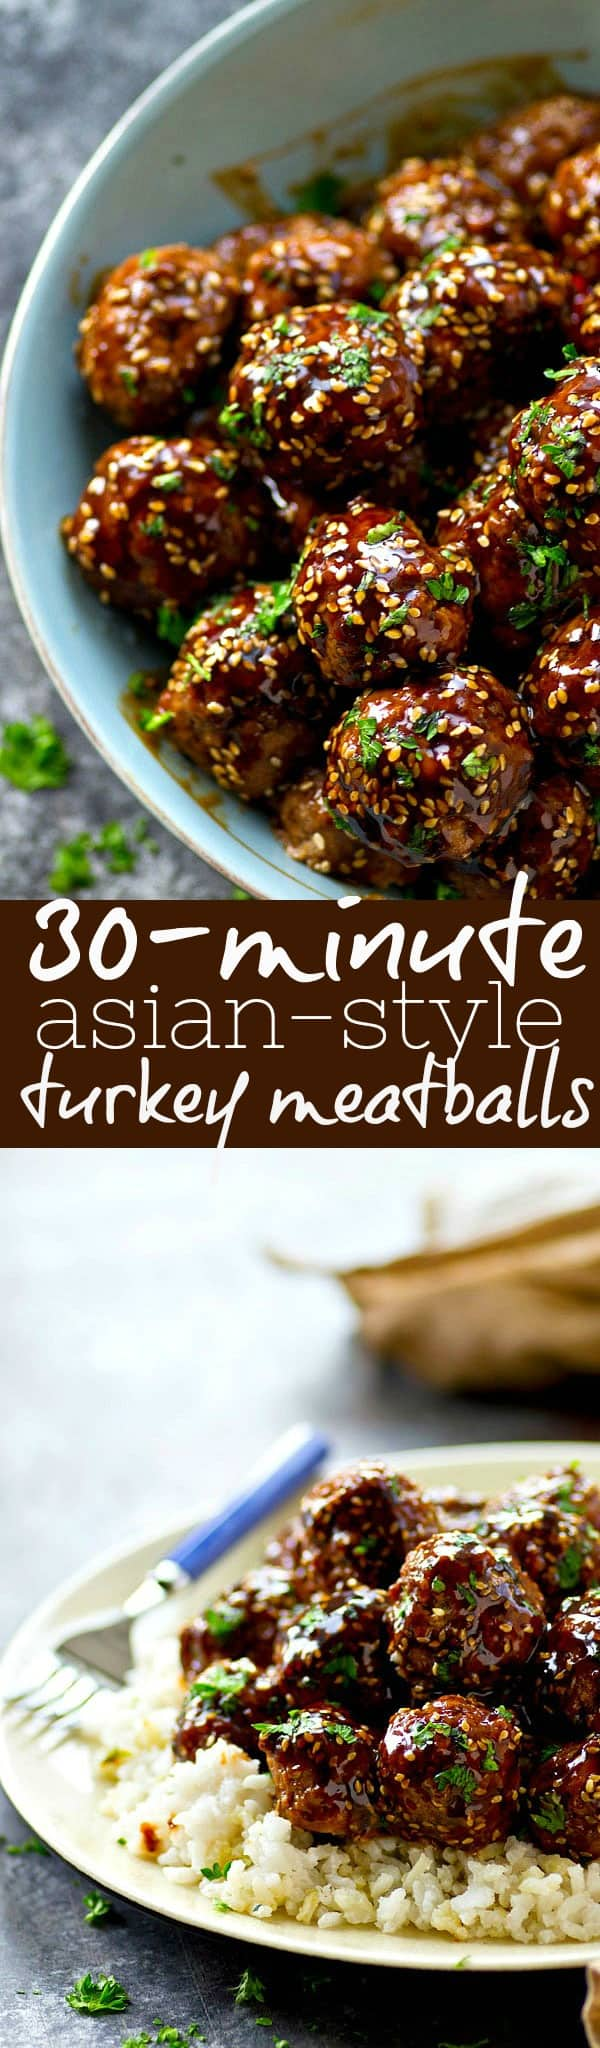 Covered in a flavorful homemade teriyaki sauce and ready in only 30 minutes, these Asian-style turkey meatballs are perfect for a last-minute dinner and so good over pasta or rice!